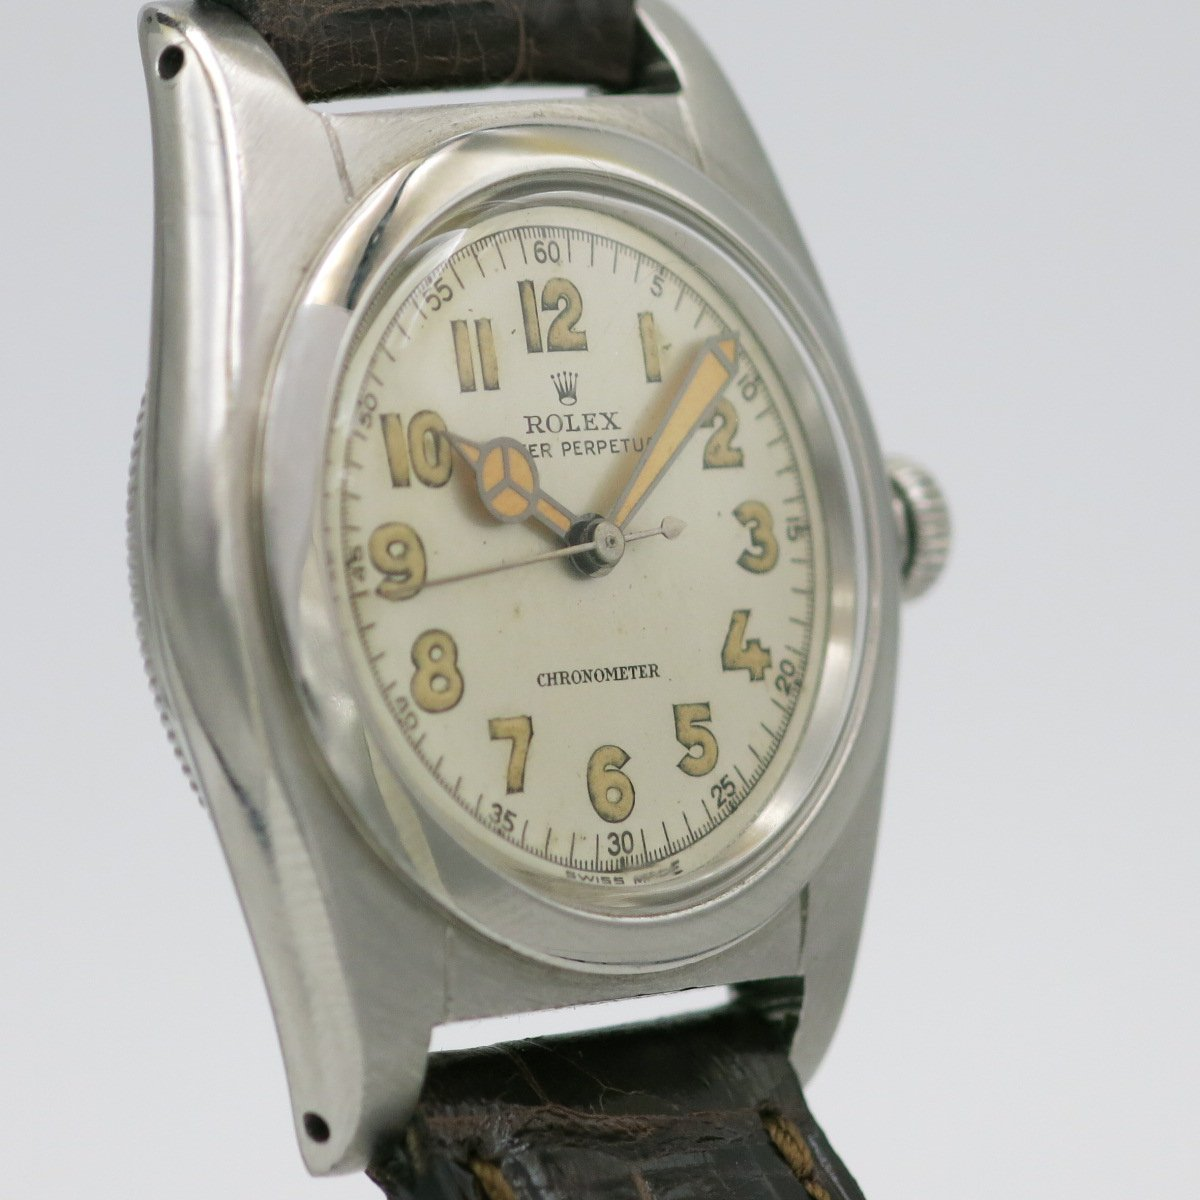 Rolex - 2940 - Oyster Perpetual - Bubbleback